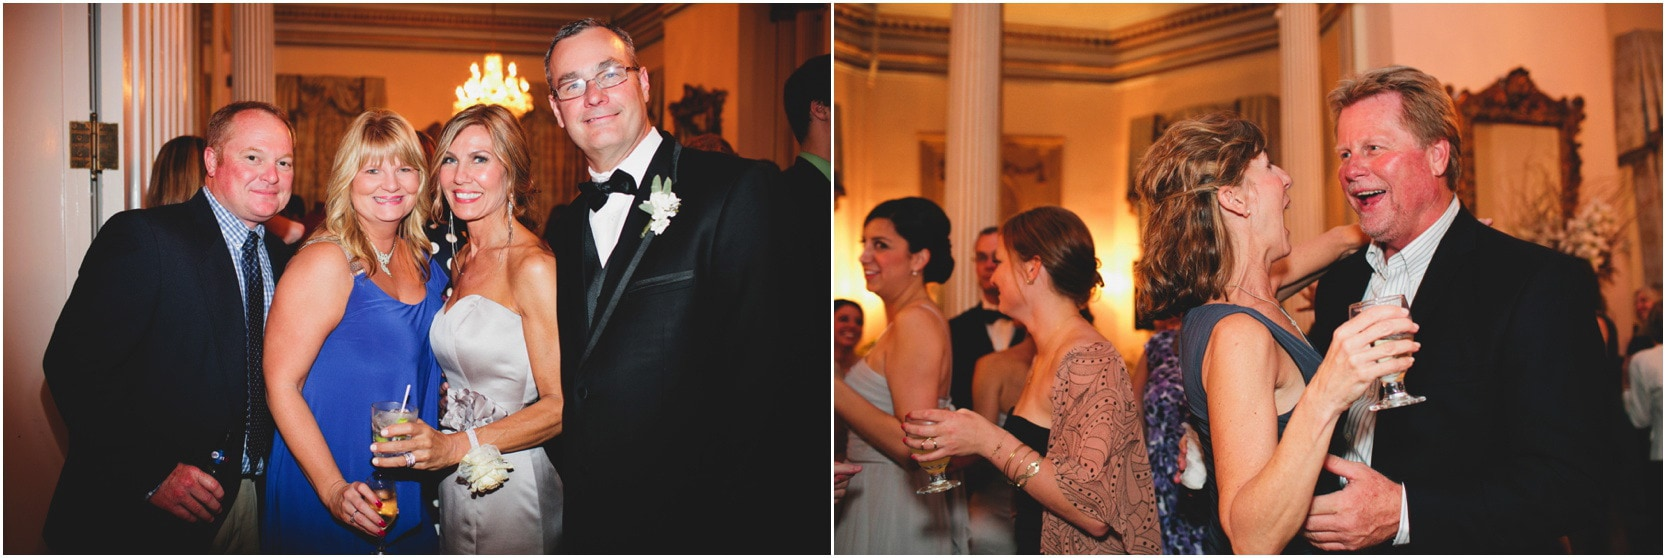 reception_spedale_neworleans__114_blogstomped